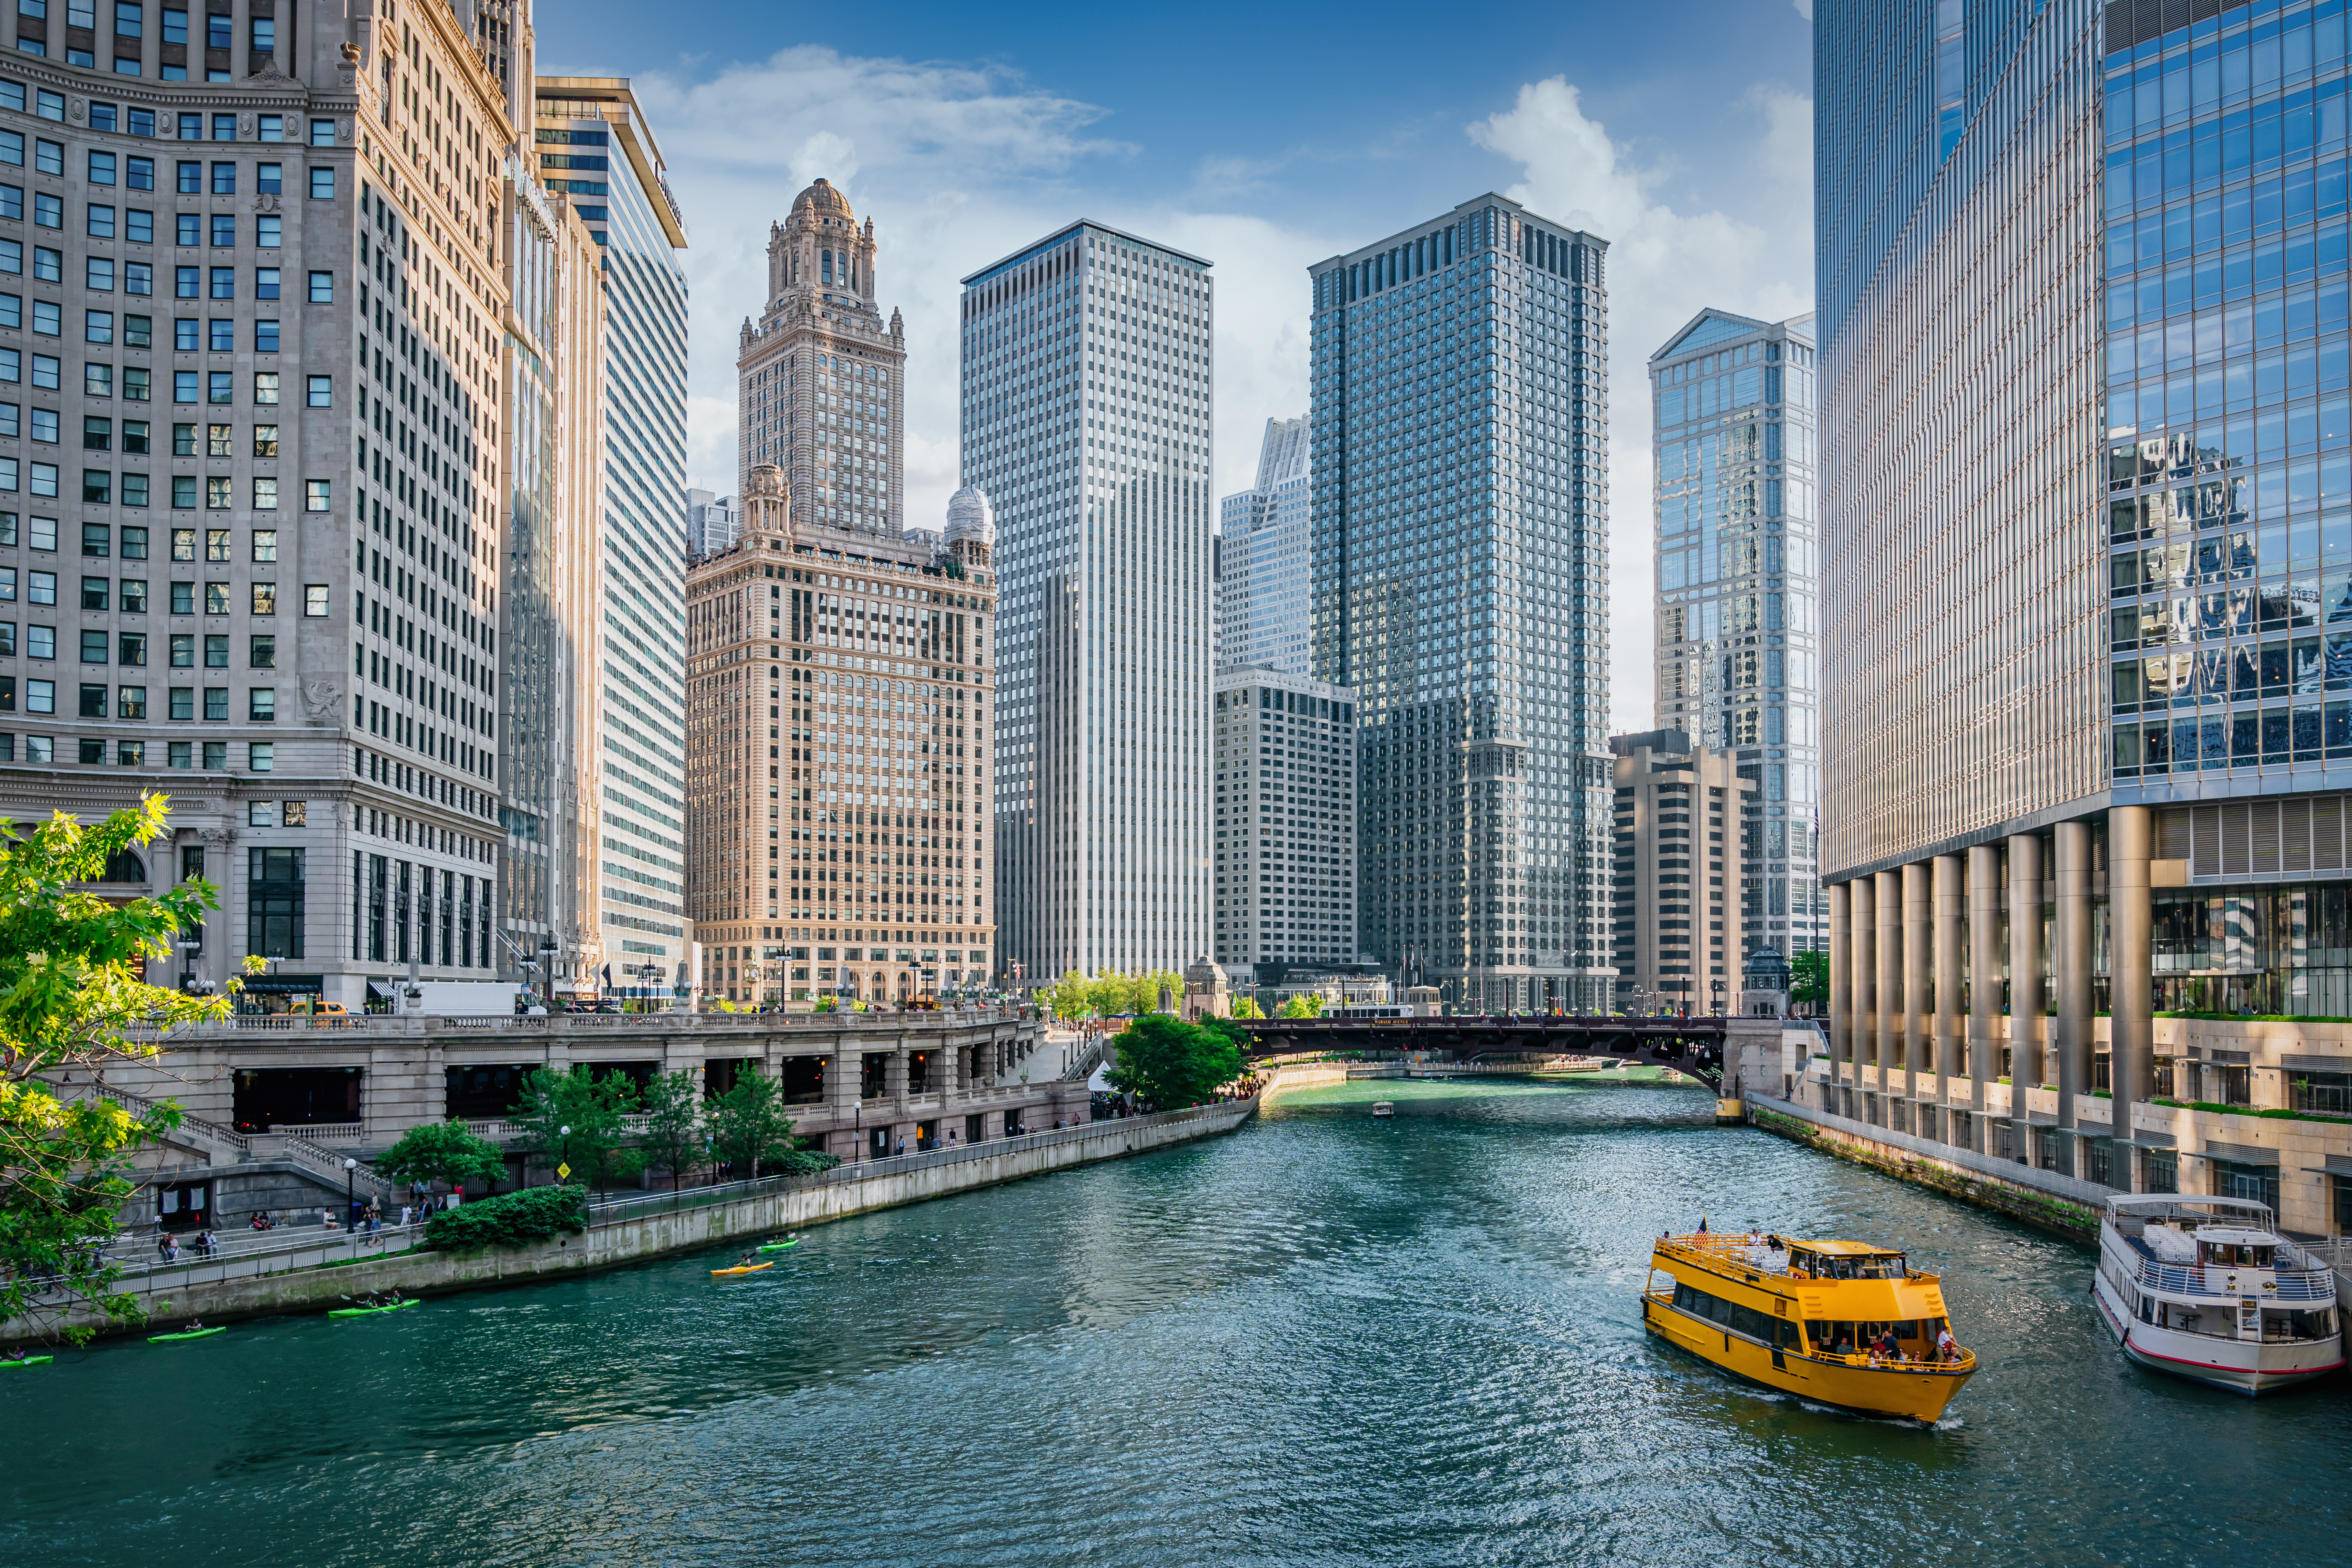 Chicago River Cityscape Water Taxi Tourboat Cruising in Summer